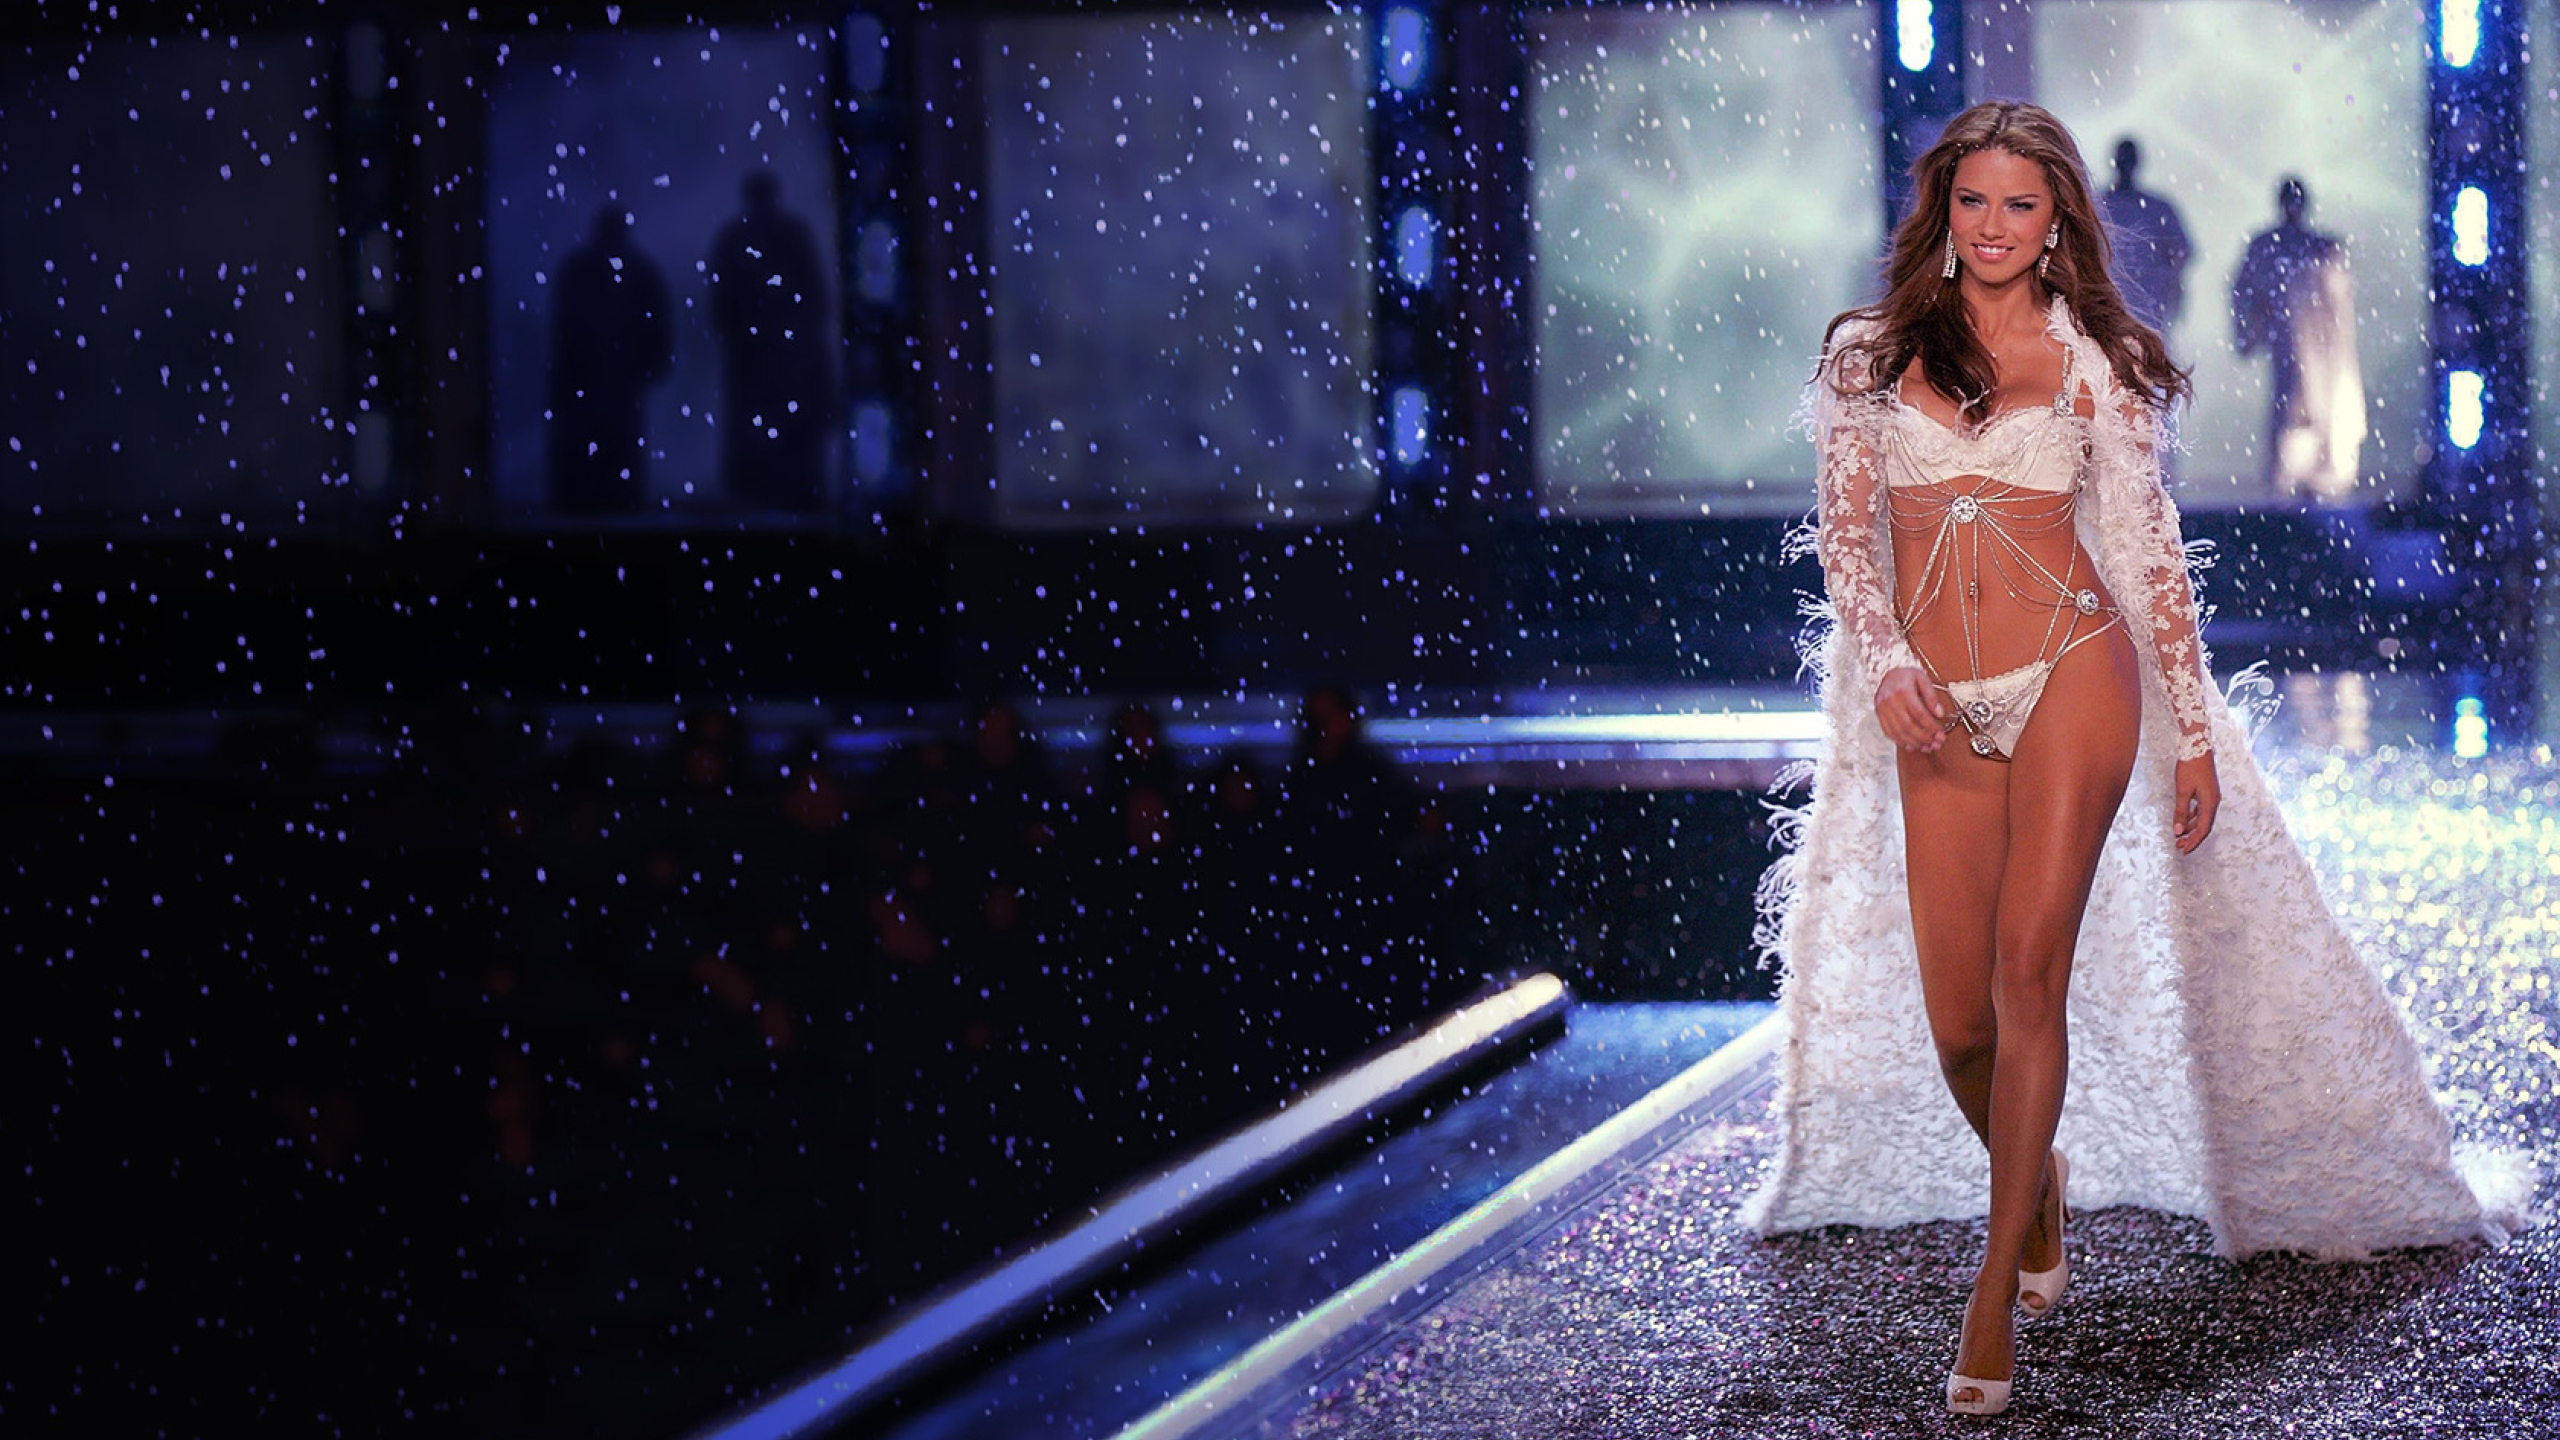 2560x1440 Adriana Lima Victorias Secret Fashion Show 2009